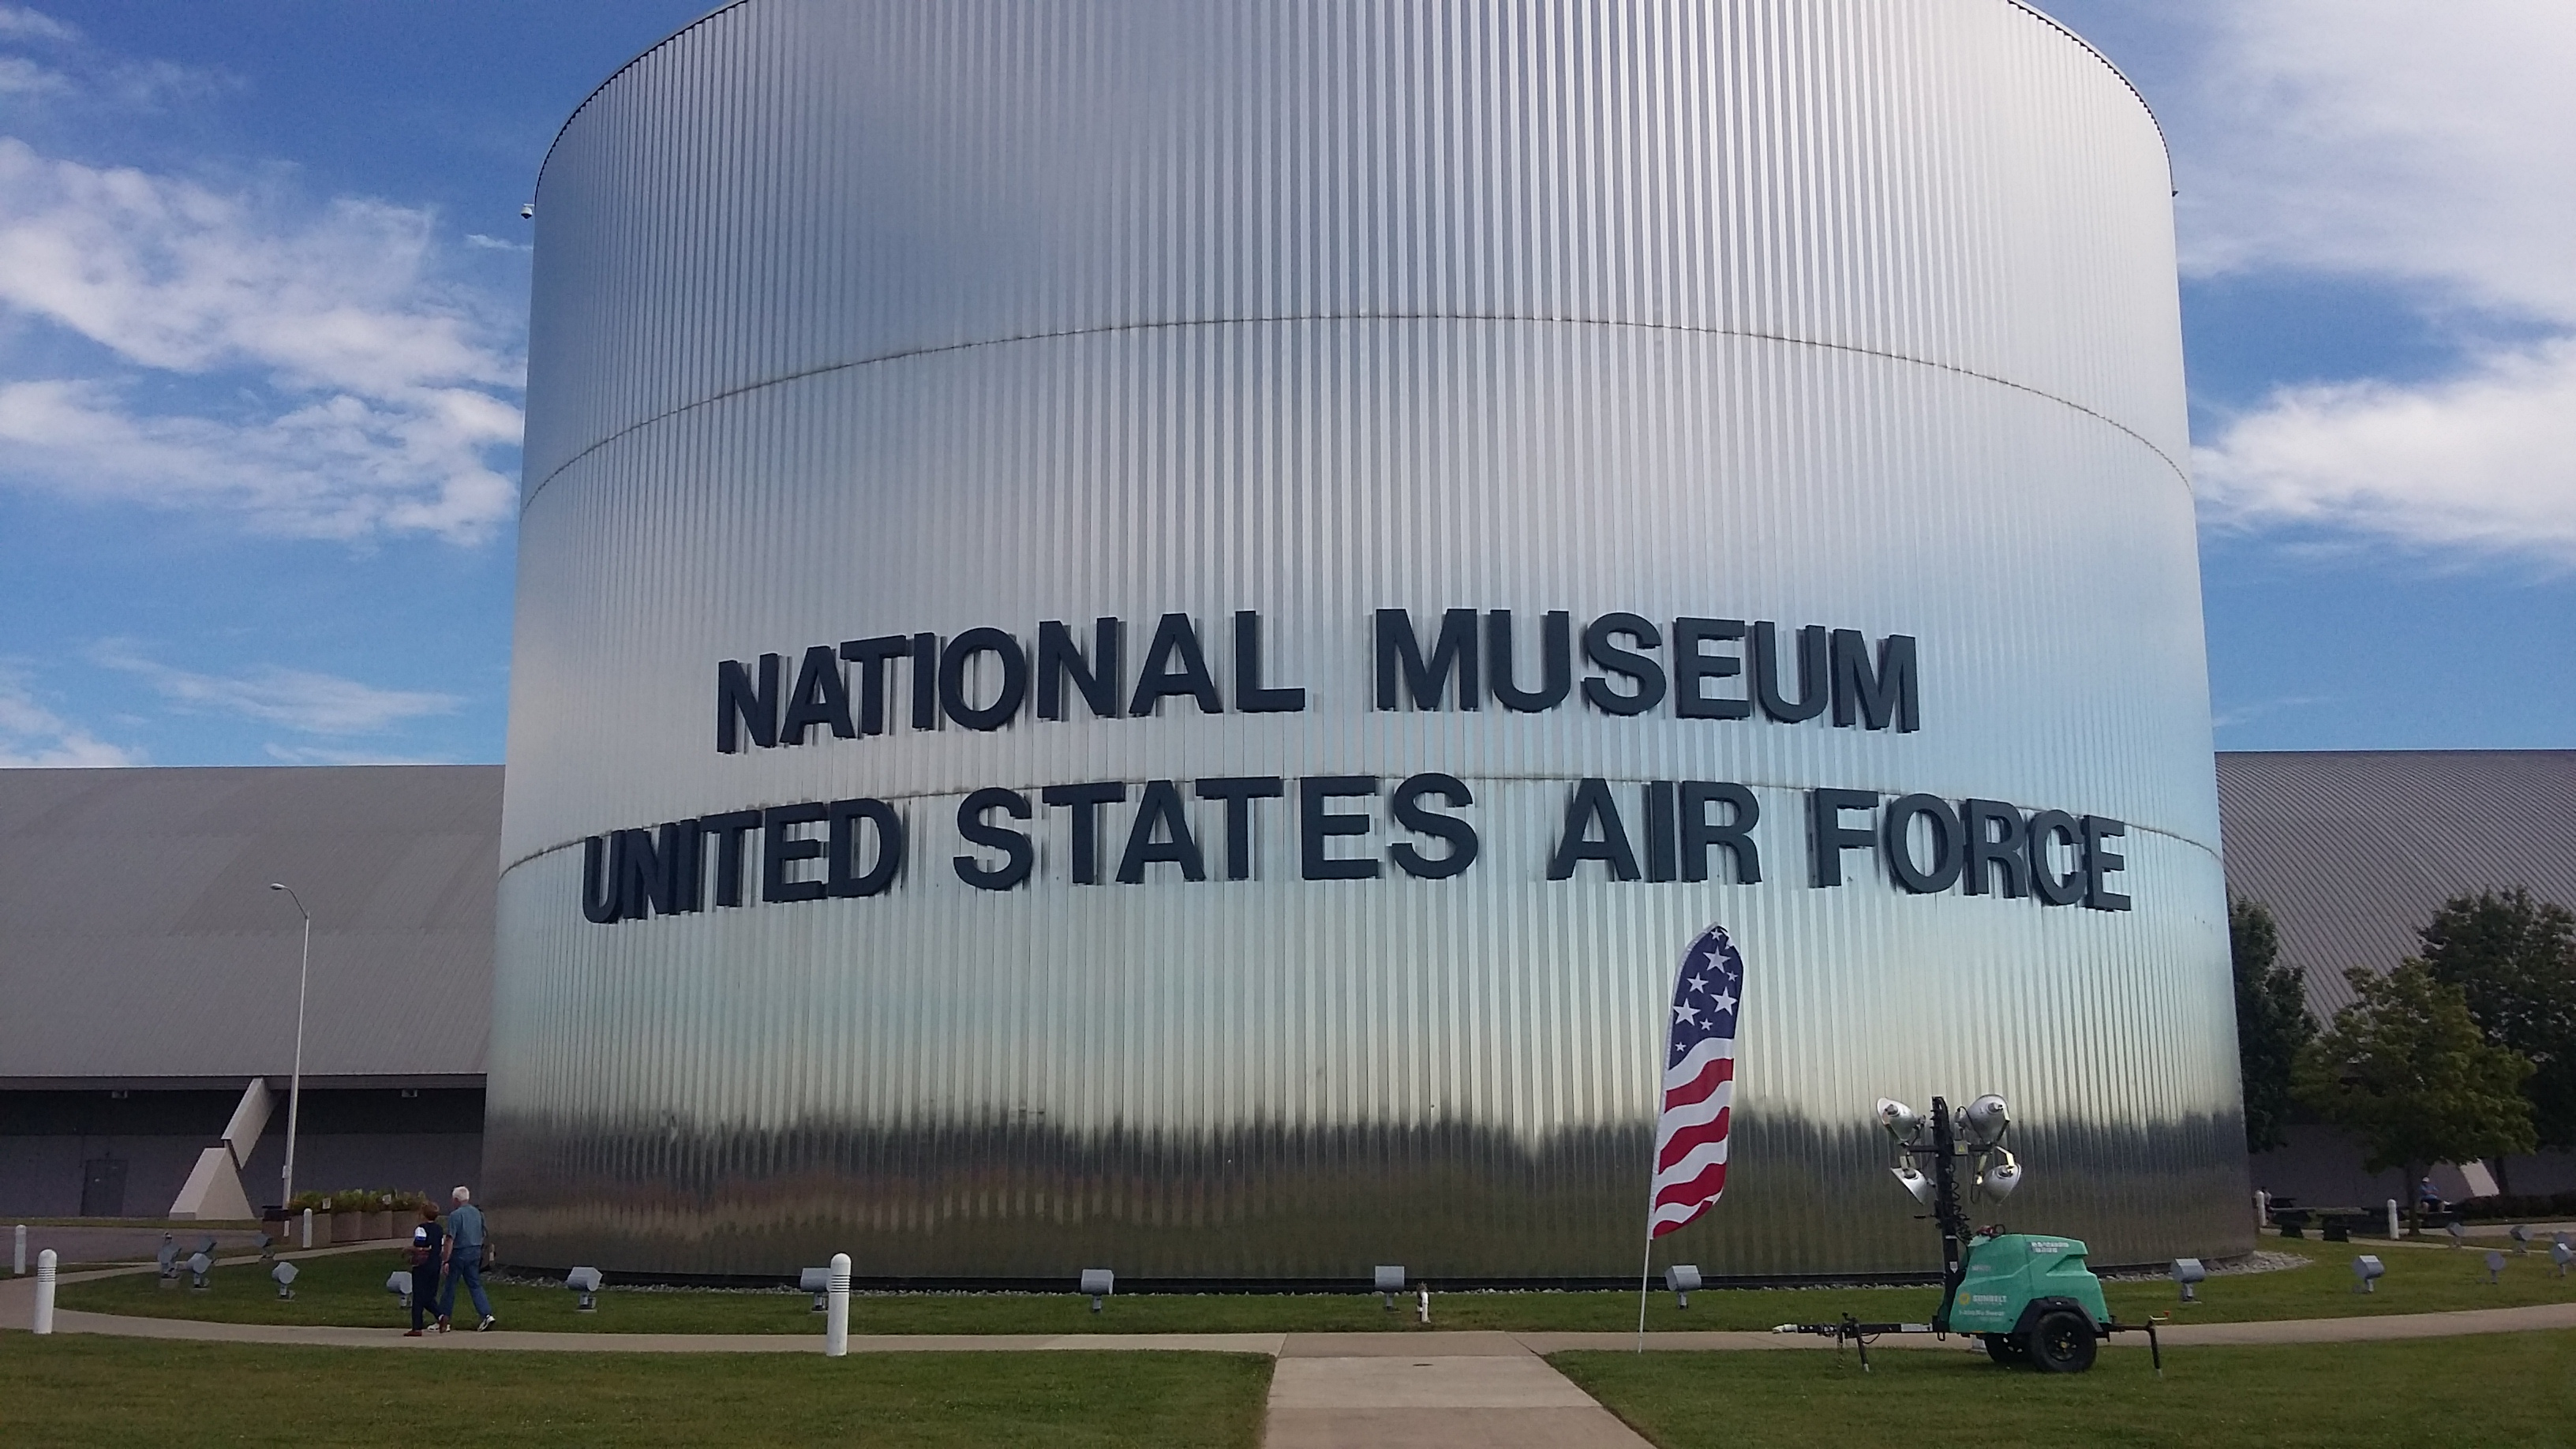 Air Force Museum in Dayton, Ohio